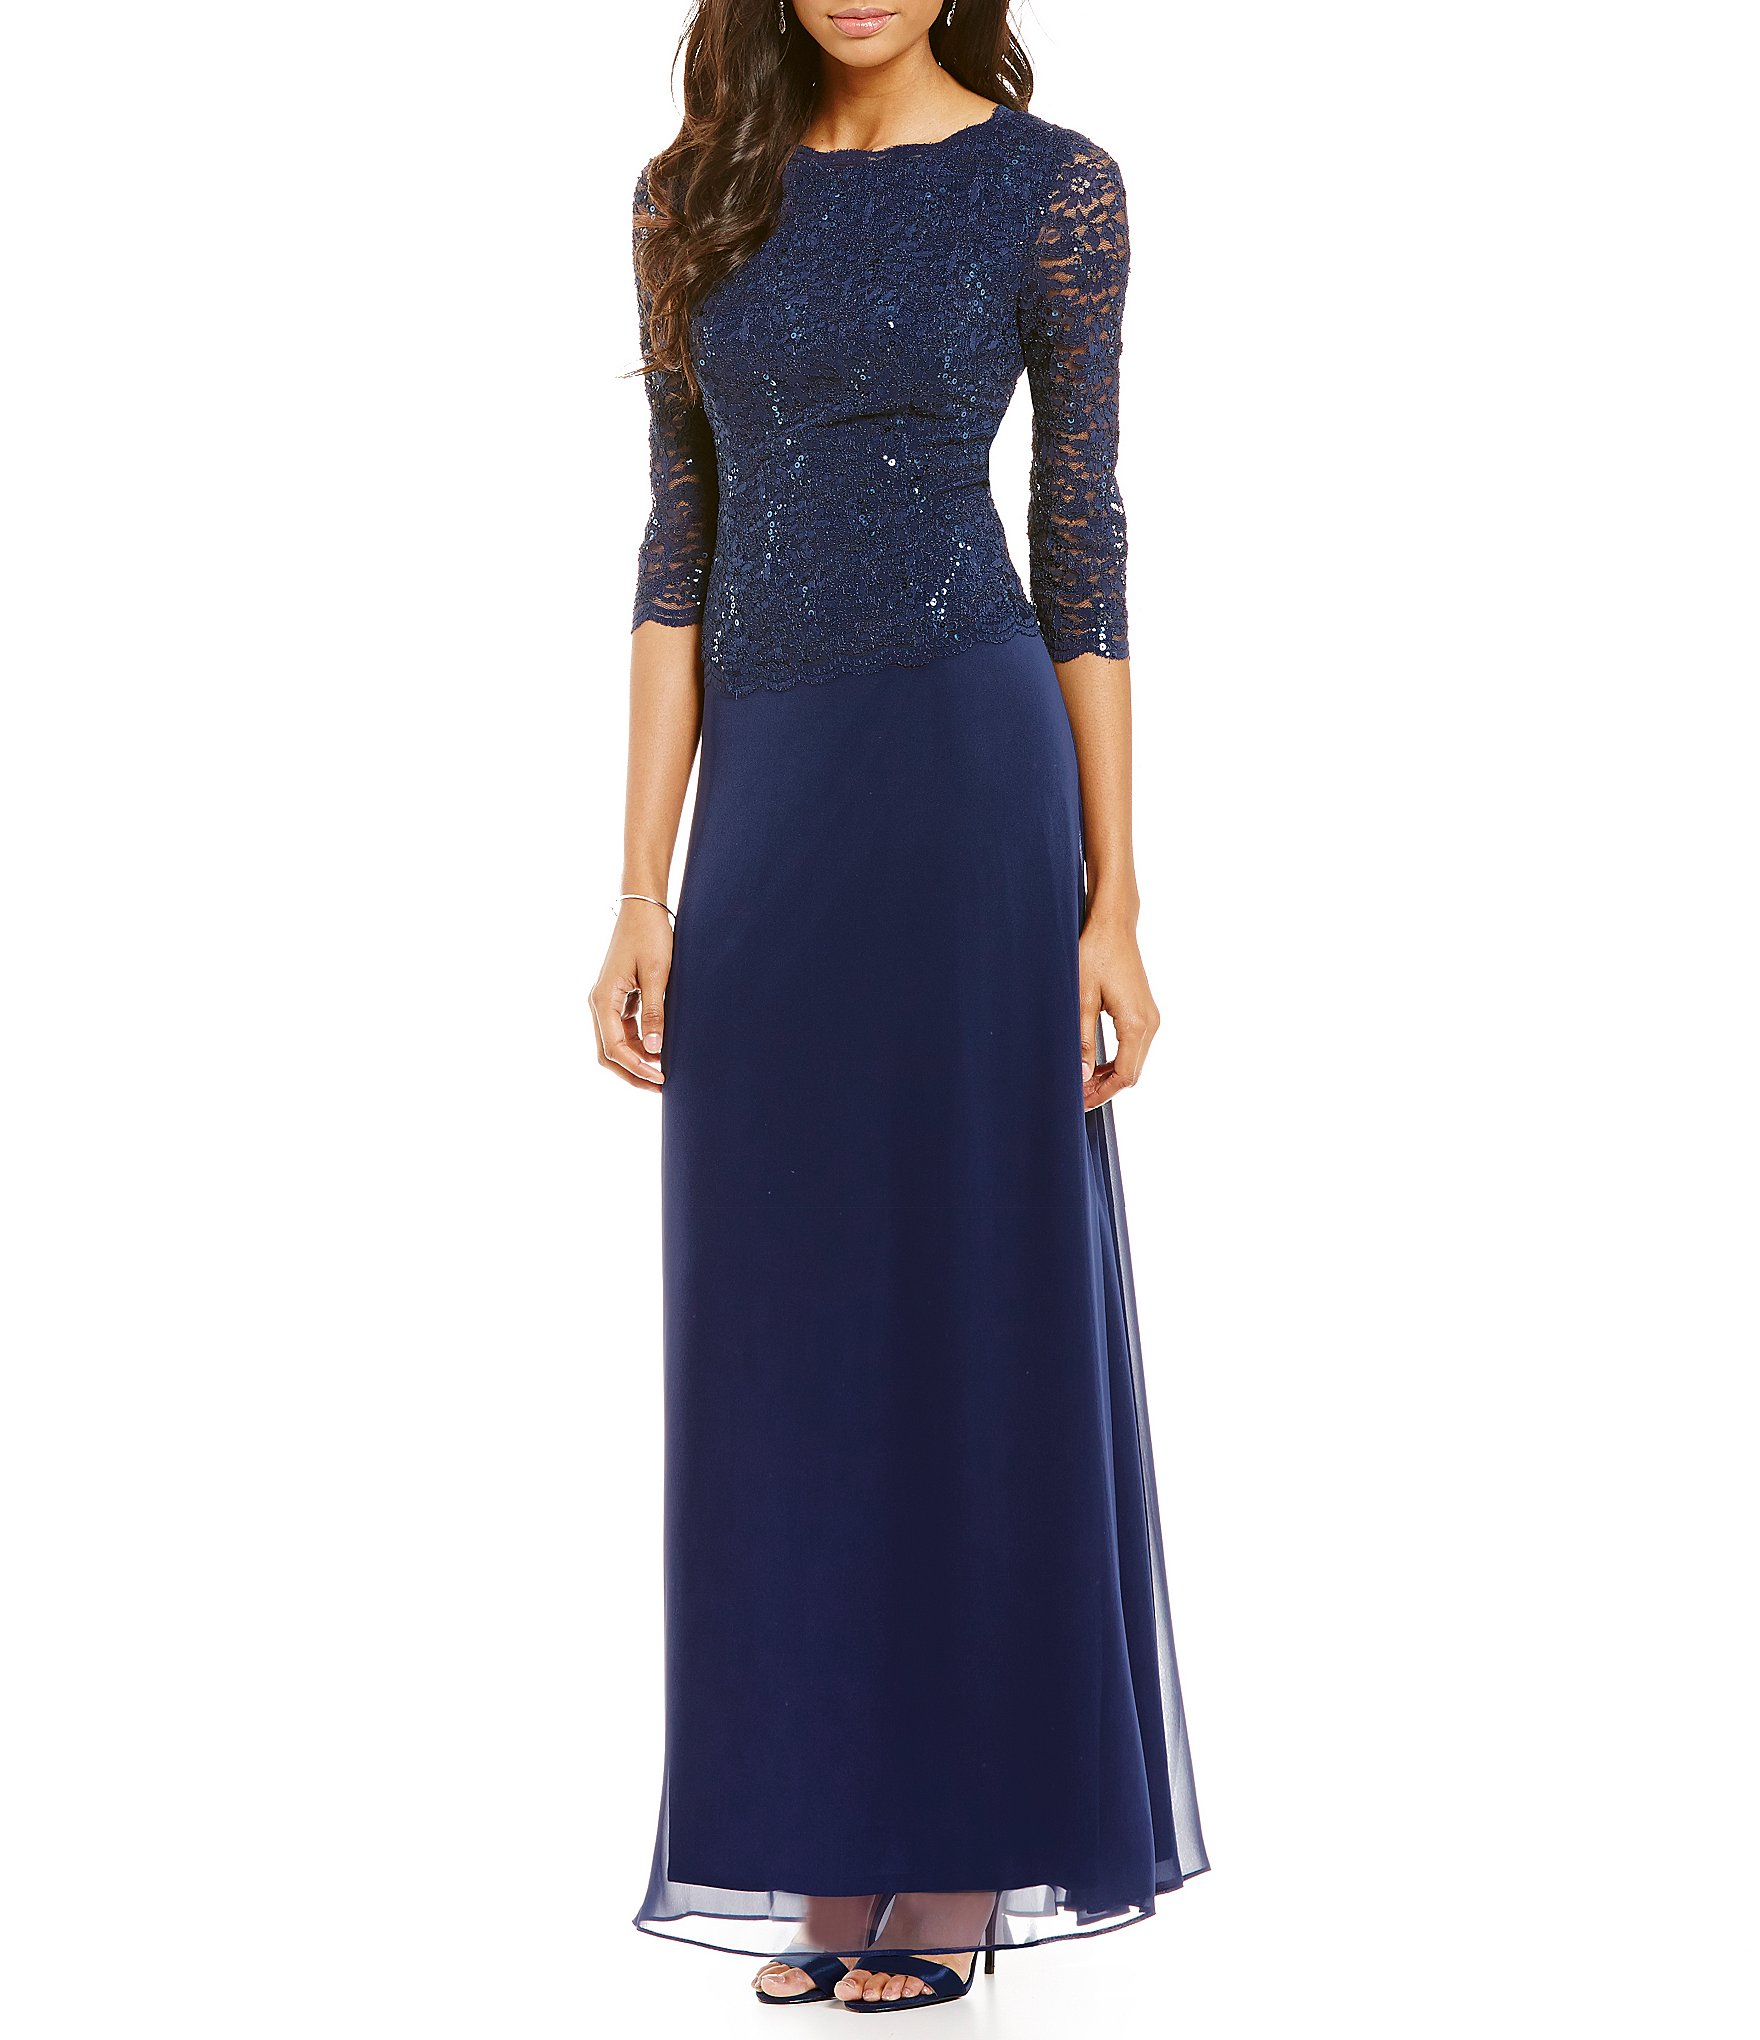 Navy Blue Dress navy blue dress: womenu0027s dresses u0026 gowns | dillards.com DCHCIJW